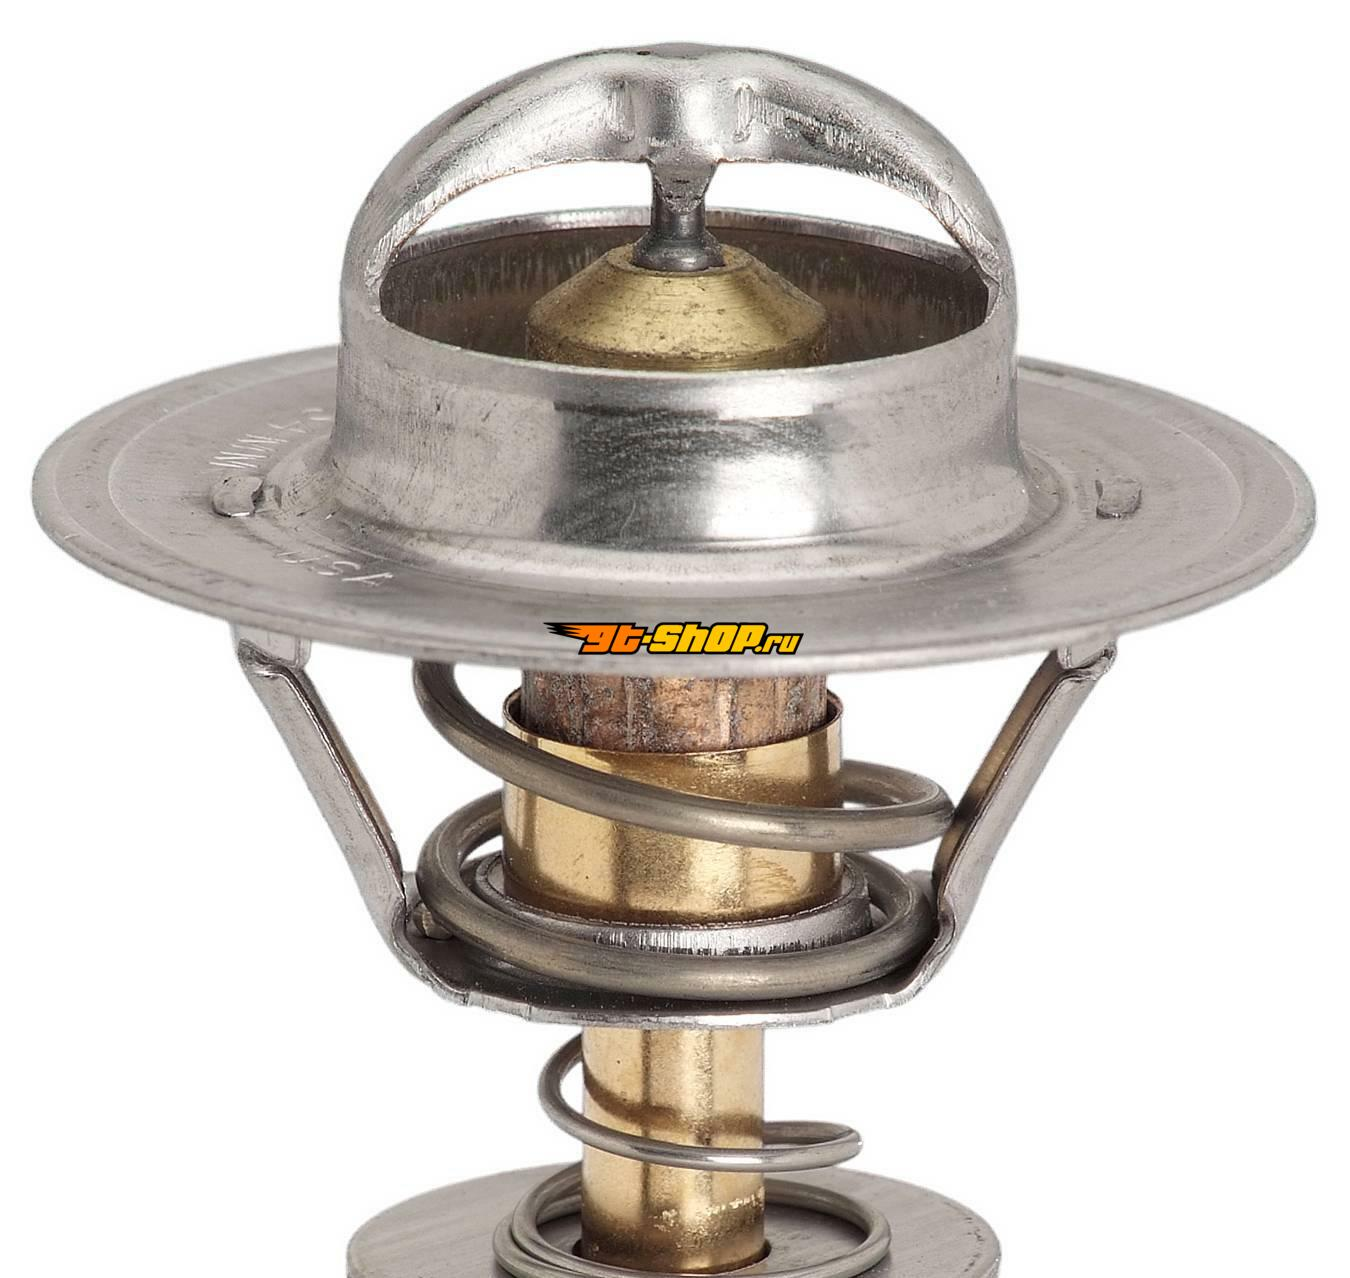 STANT 13778 Thermostat, От 482 Руб.